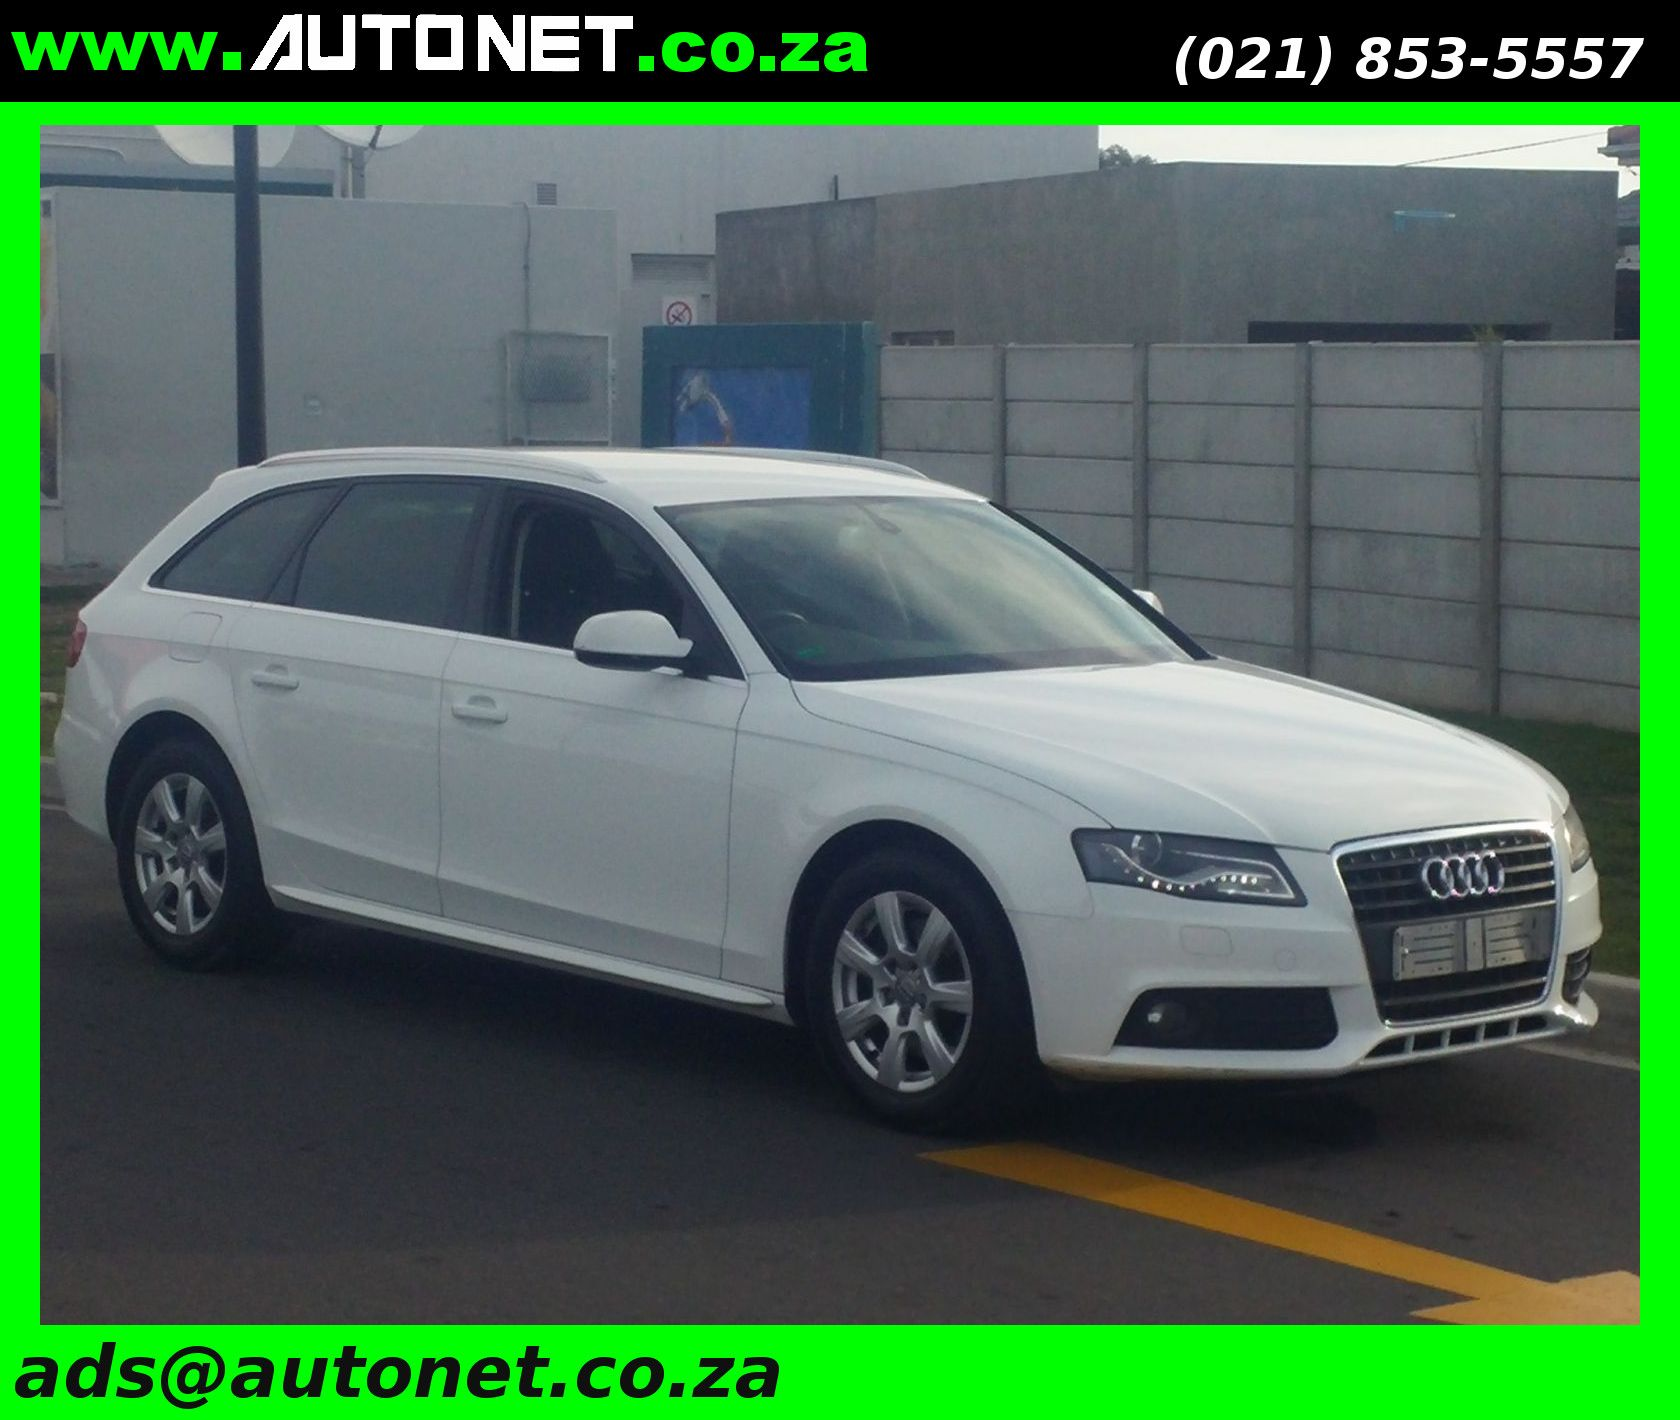 AUDI A4 1.8T AVANT AMBITION MULTI (B8) Available